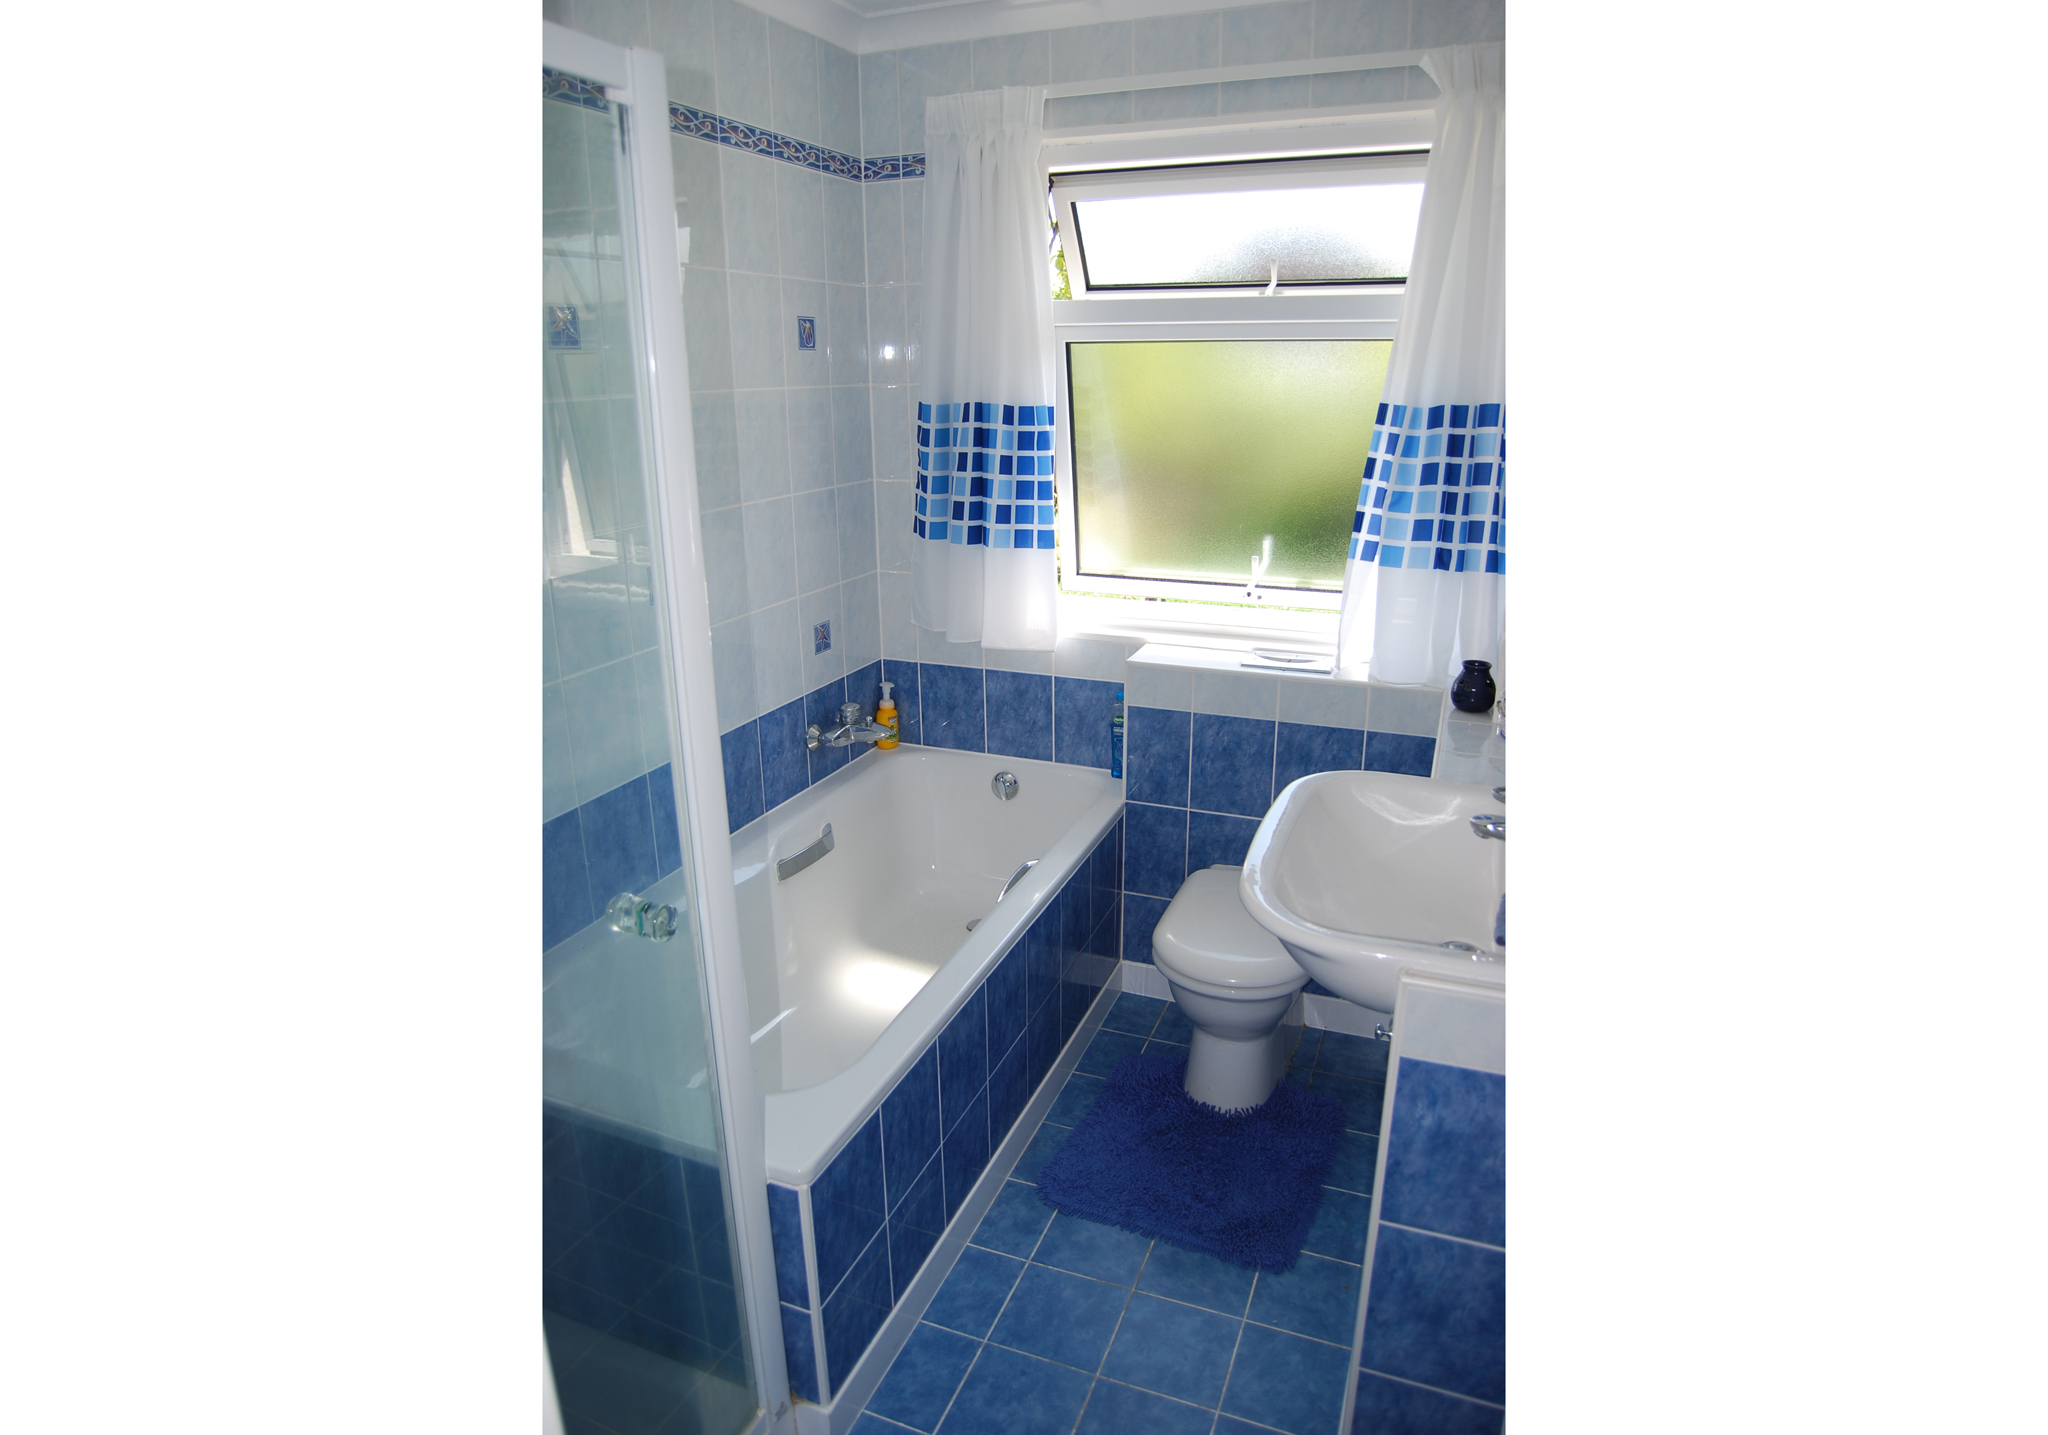 Property for sale in Guernsey - Homes and flats to buy or rent in ...